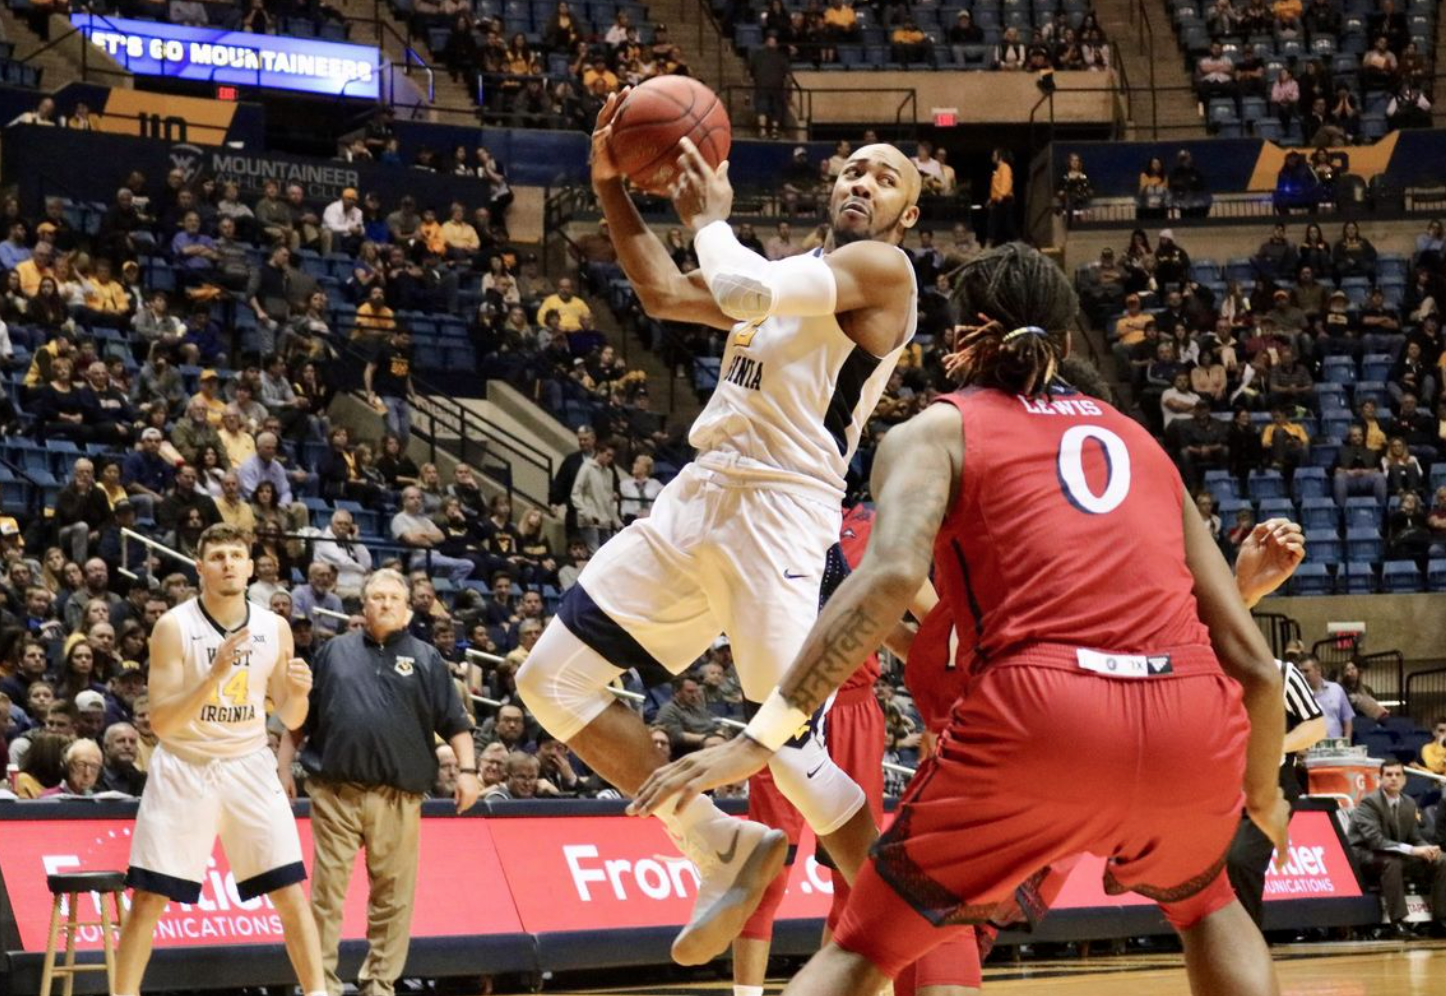 Jevon Carter goes in for a layup against NJIT Thursday night in WVU's big win, during which Carter set the Mountaineer career record for steals.  (Photo by Temitayo Adesokan / Daily Athenaeum)